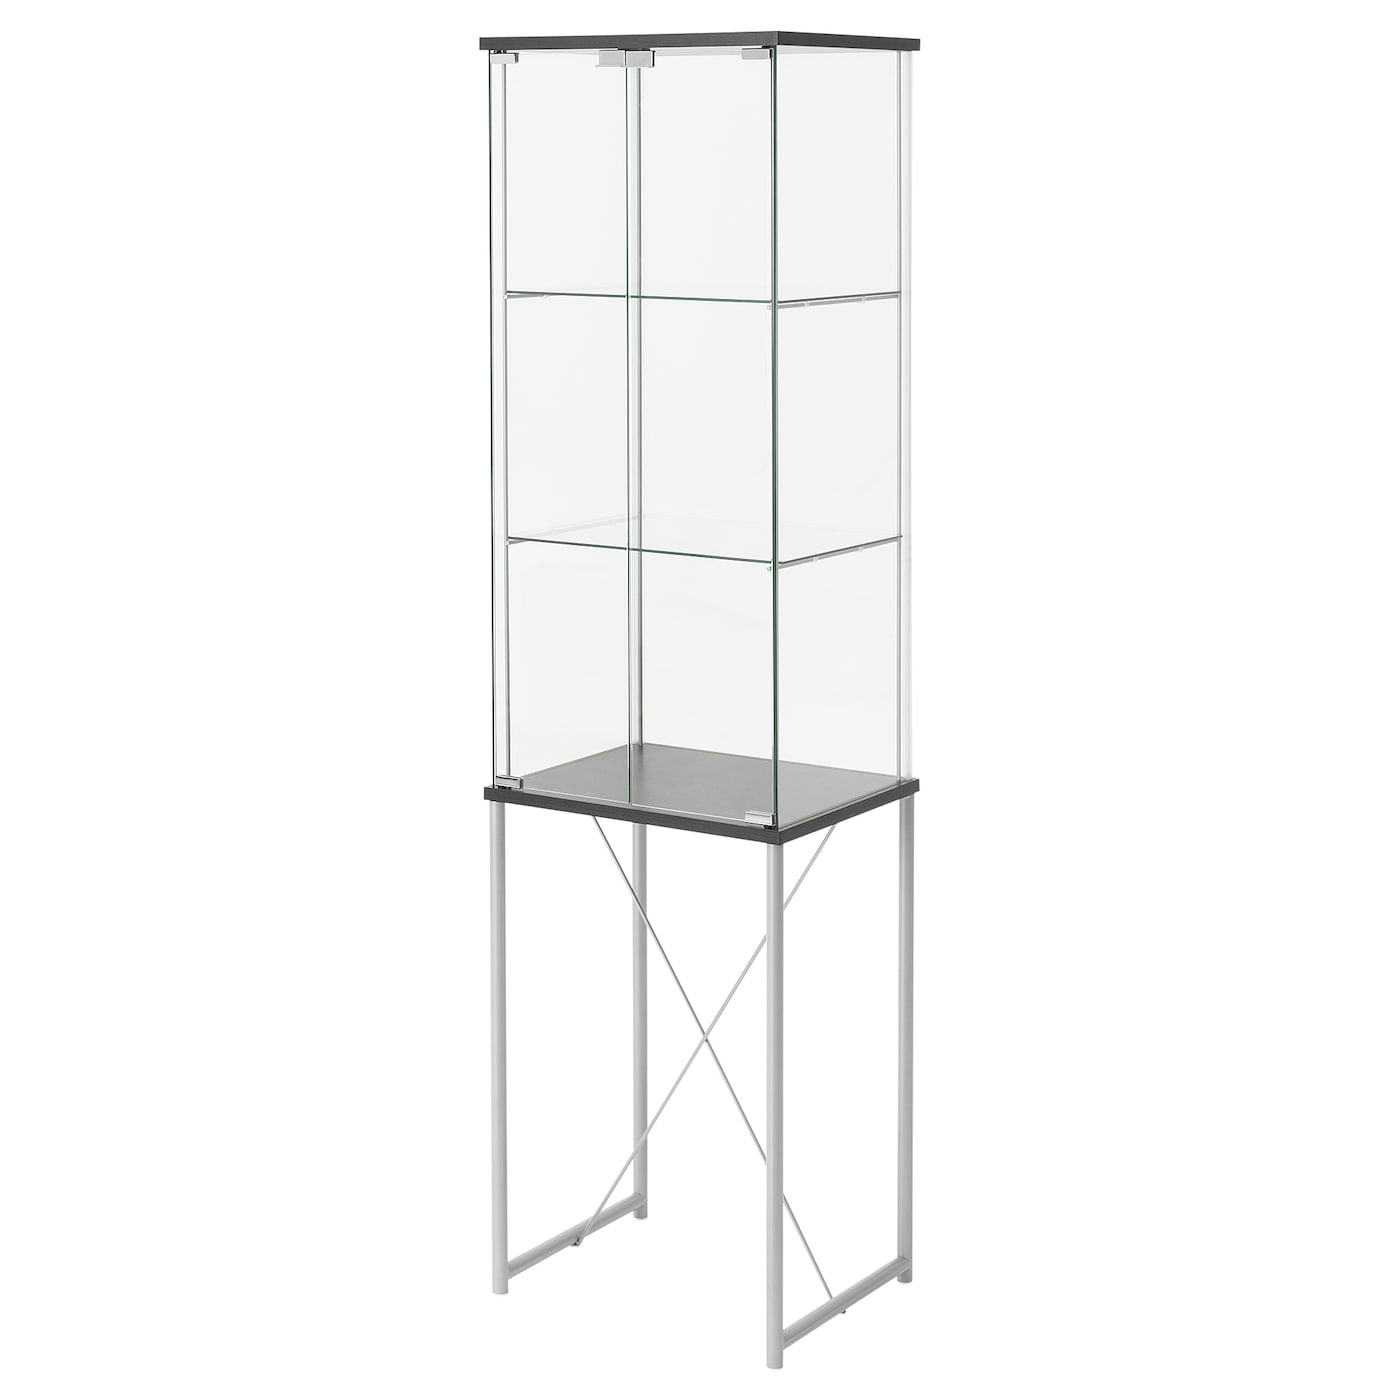 Display Cabinets Glass Display Cabinets Ikea